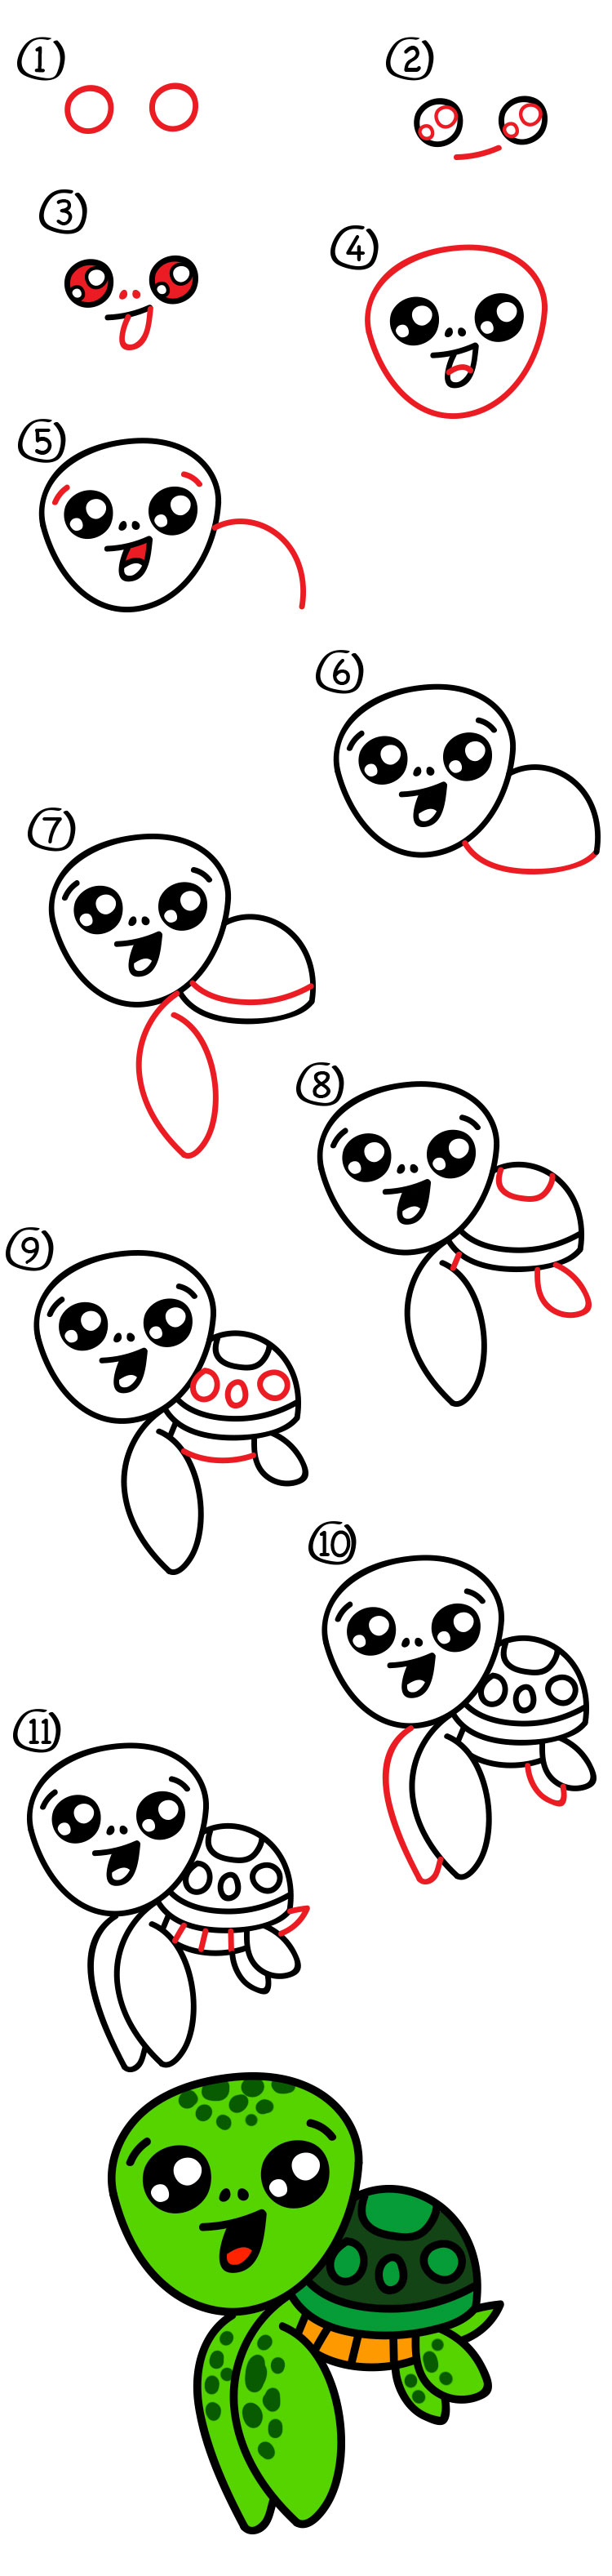 It's just an image of Effortless Turtle Cartoon Drawing